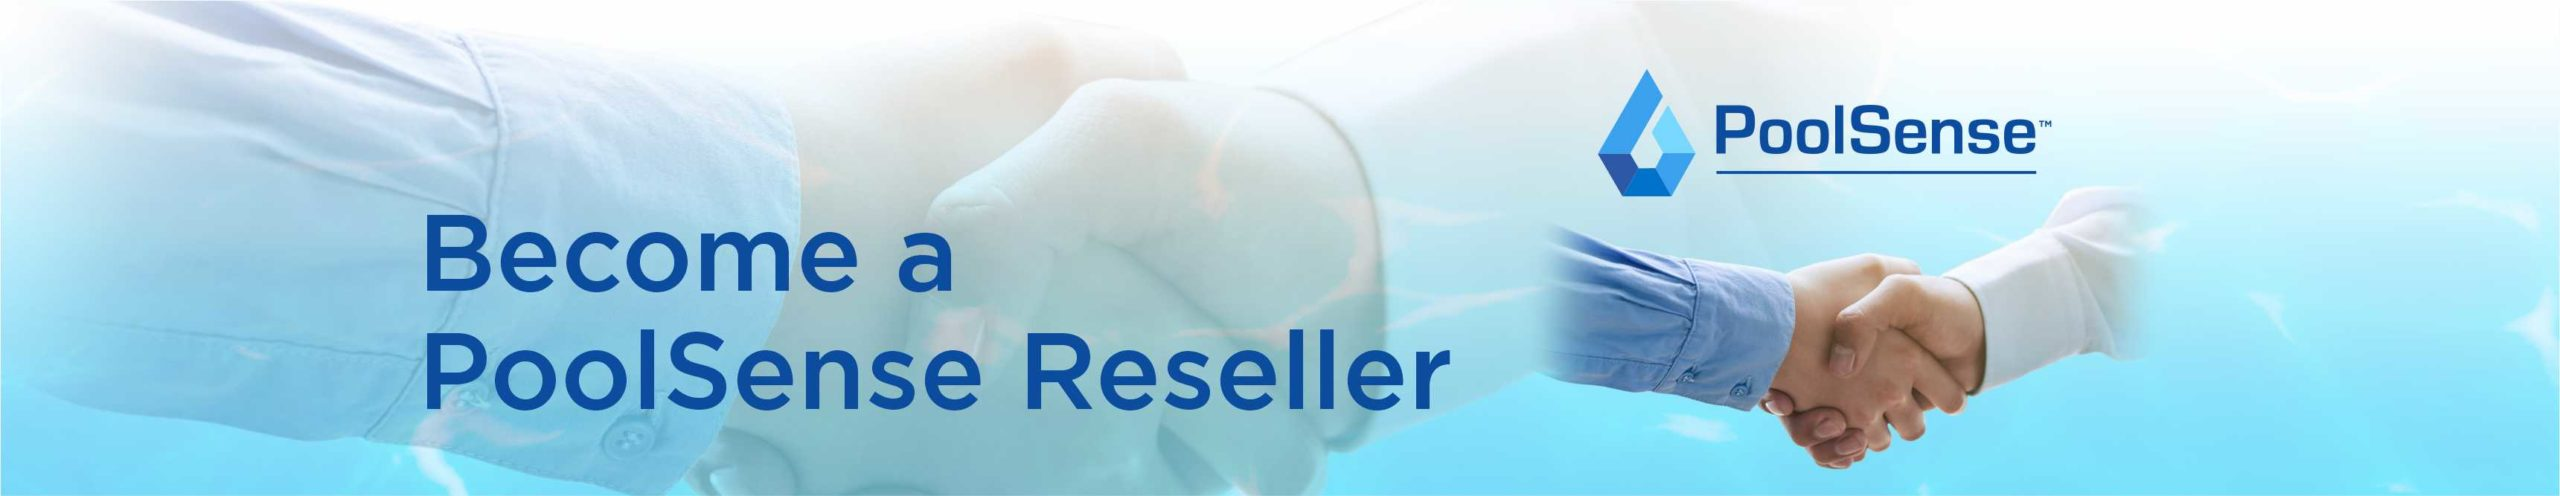 banner_become a poolsense reseller